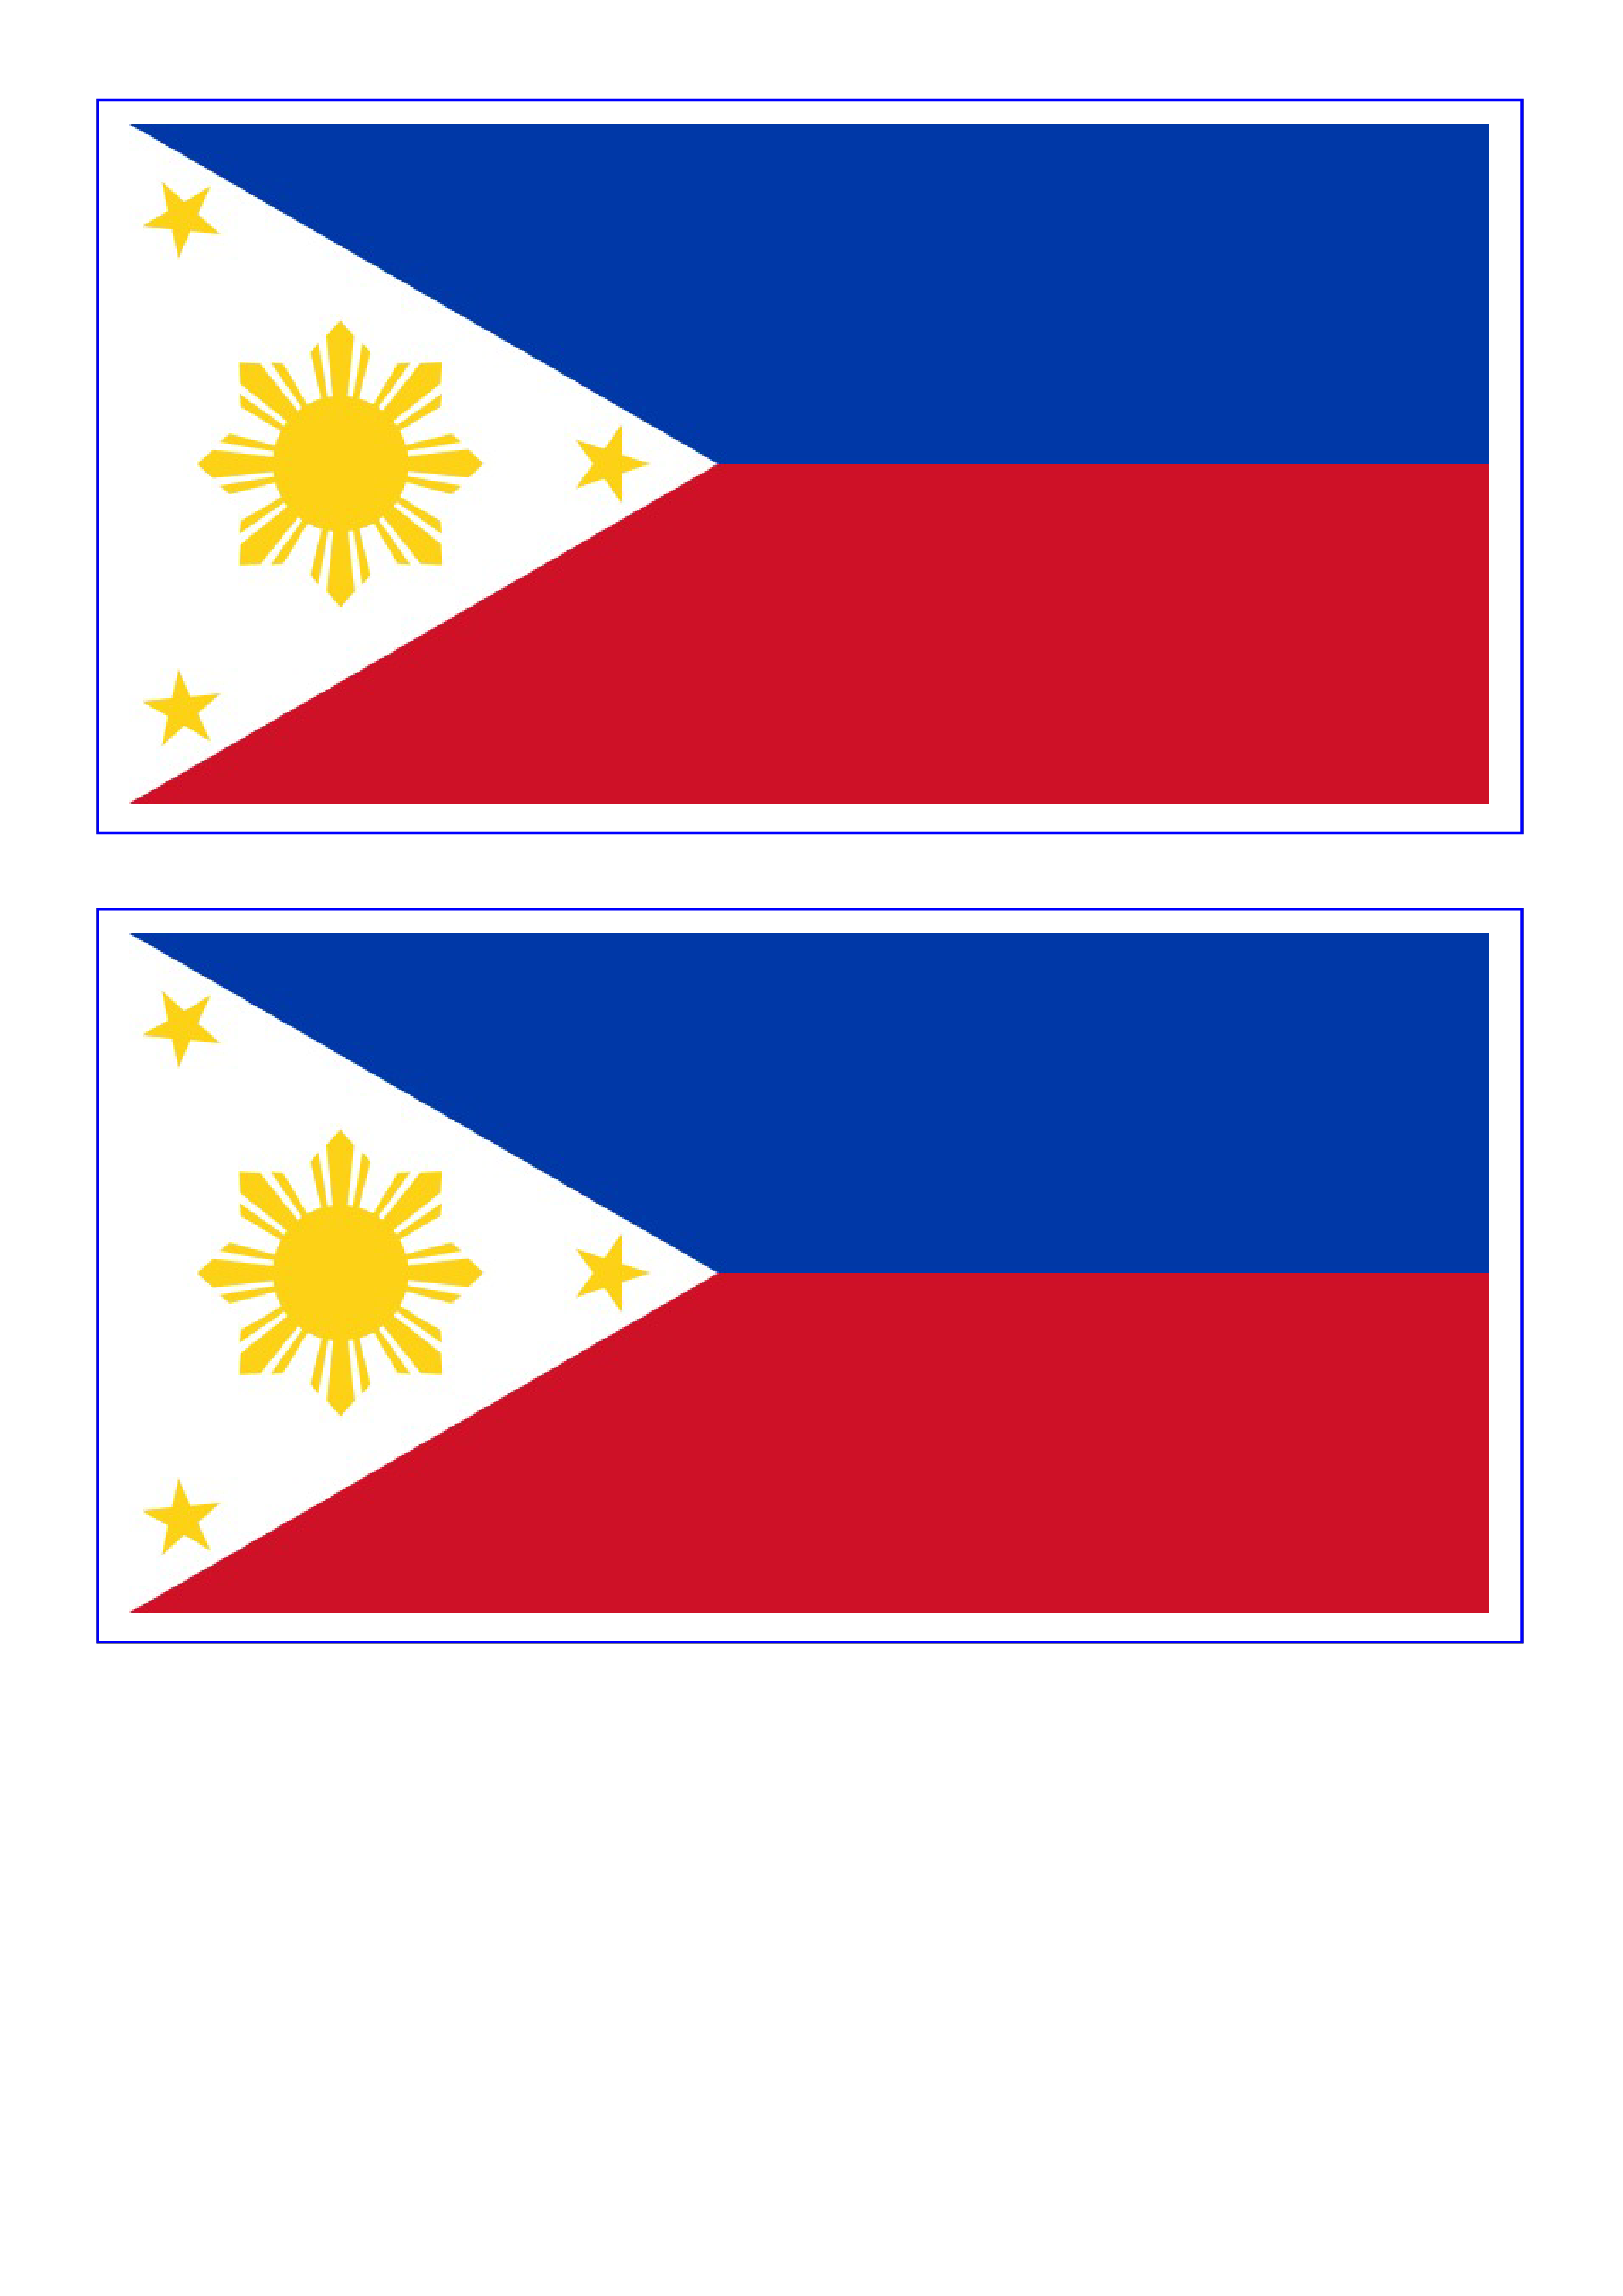 Download This Free Printable Philippines Template A4 Flag A5 Flag 8 And 21 Flags On One A4page Easy To Use Flag Template Flag Coloring Pages Philippine Flag